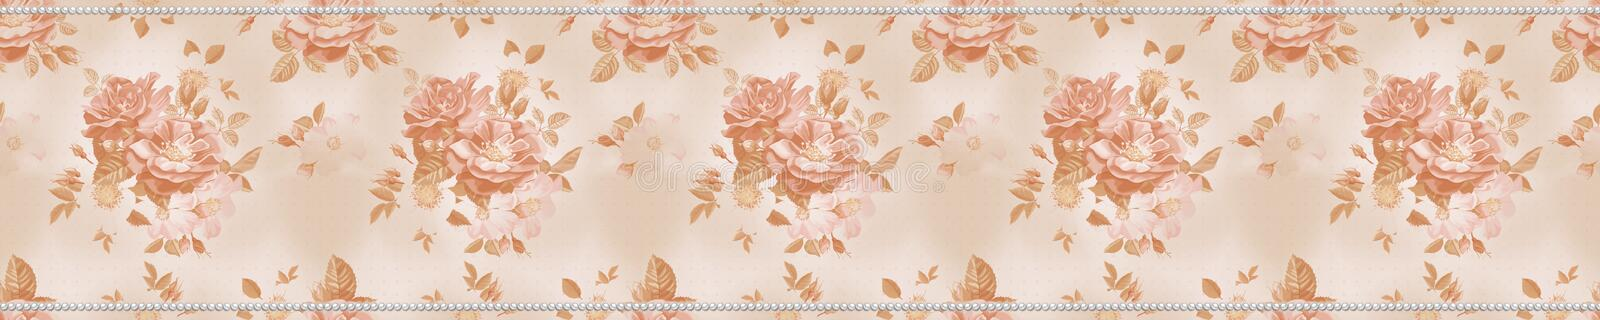 Roses and pearls stock photo